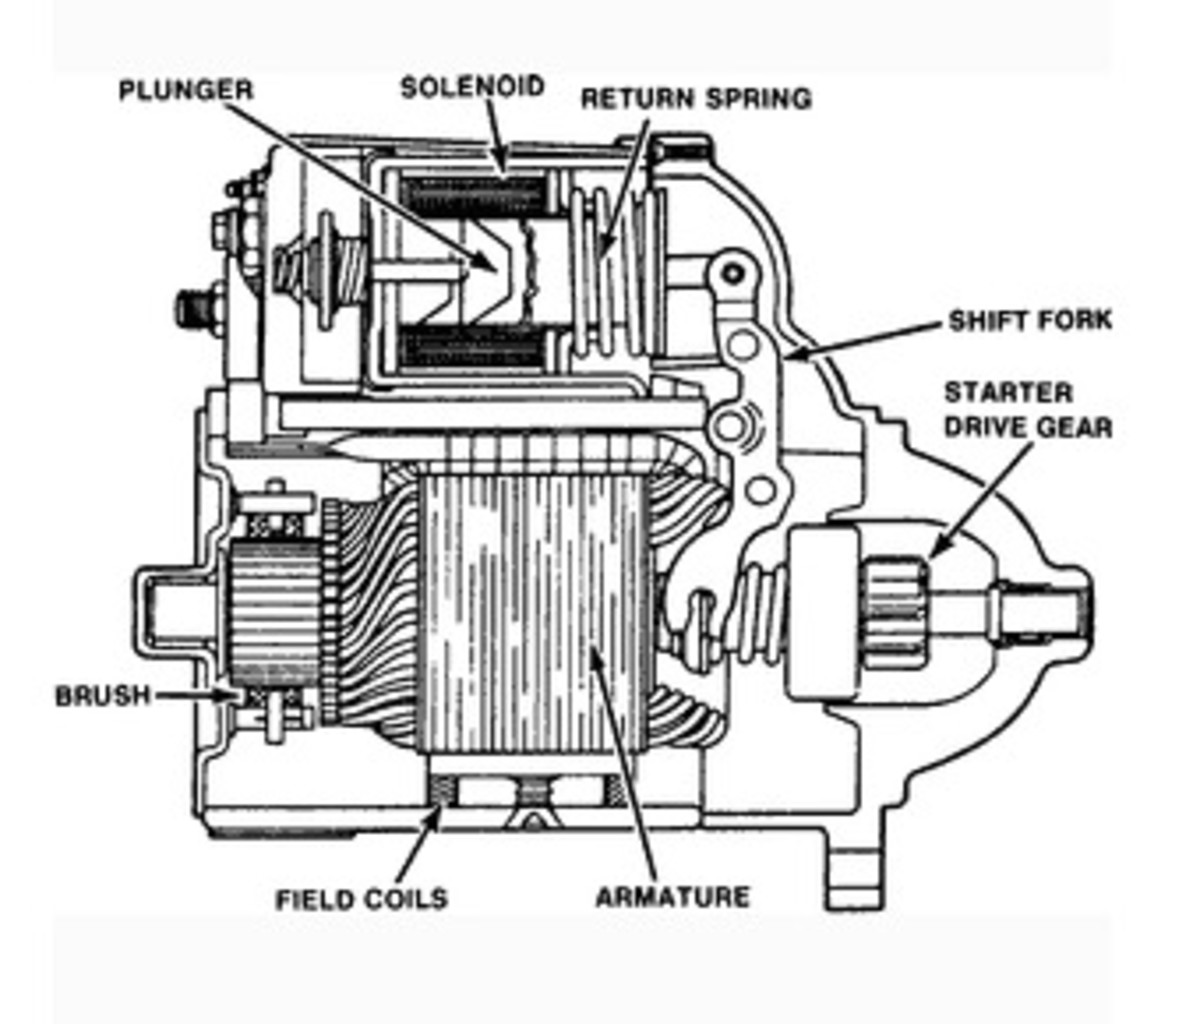 A faulty starter solenoid can prevent the starter motor from operating properly.